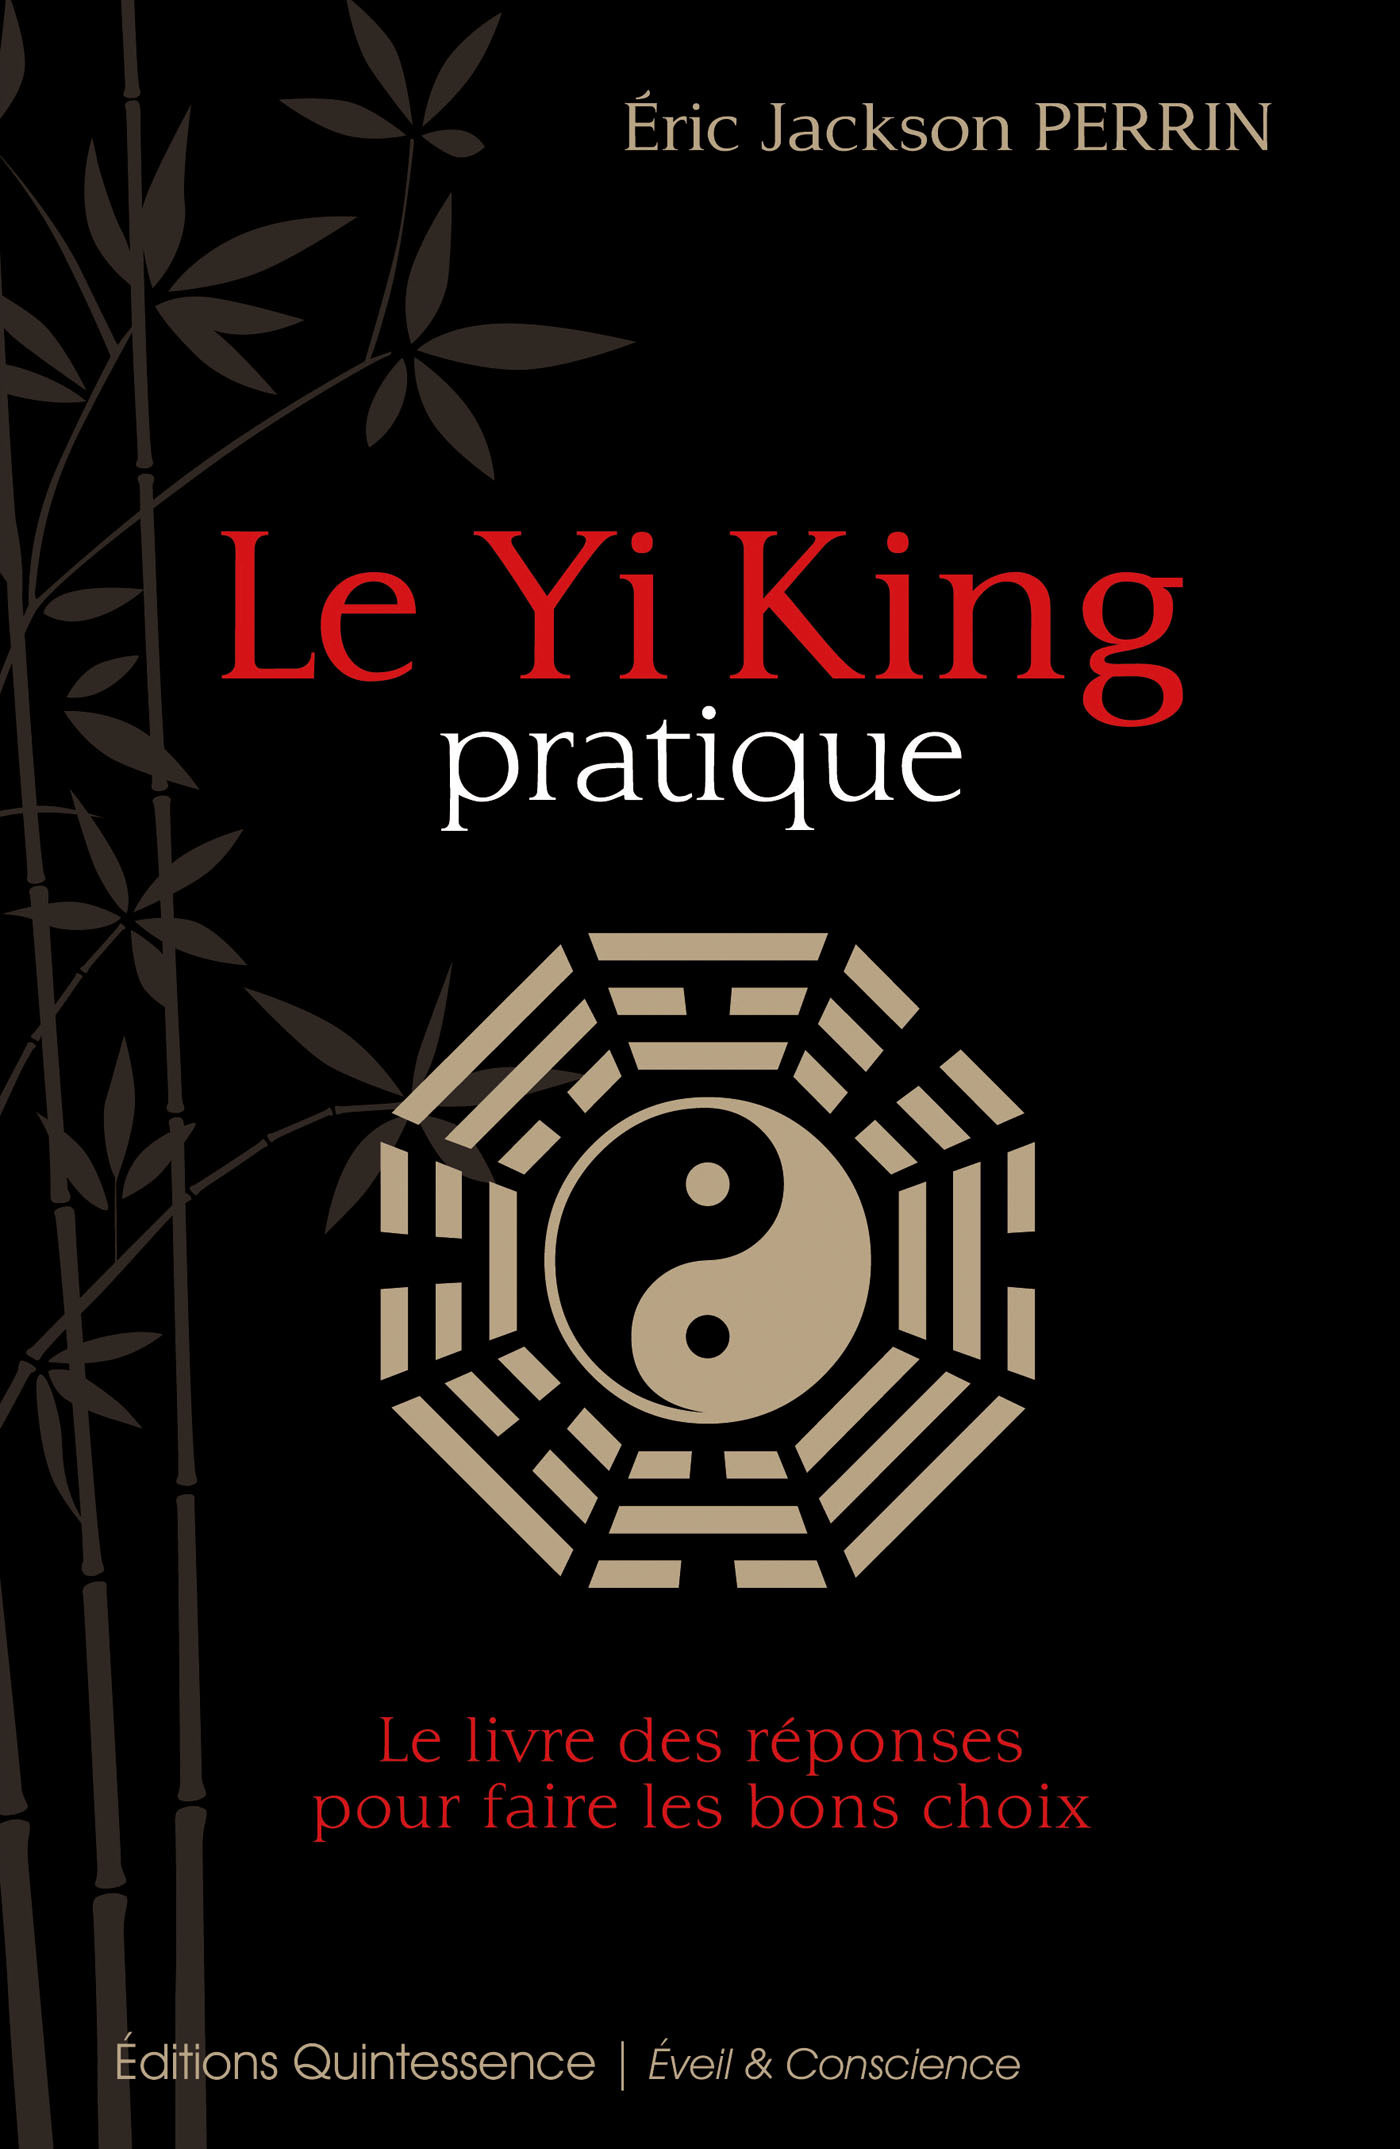 Le Yi King pratique